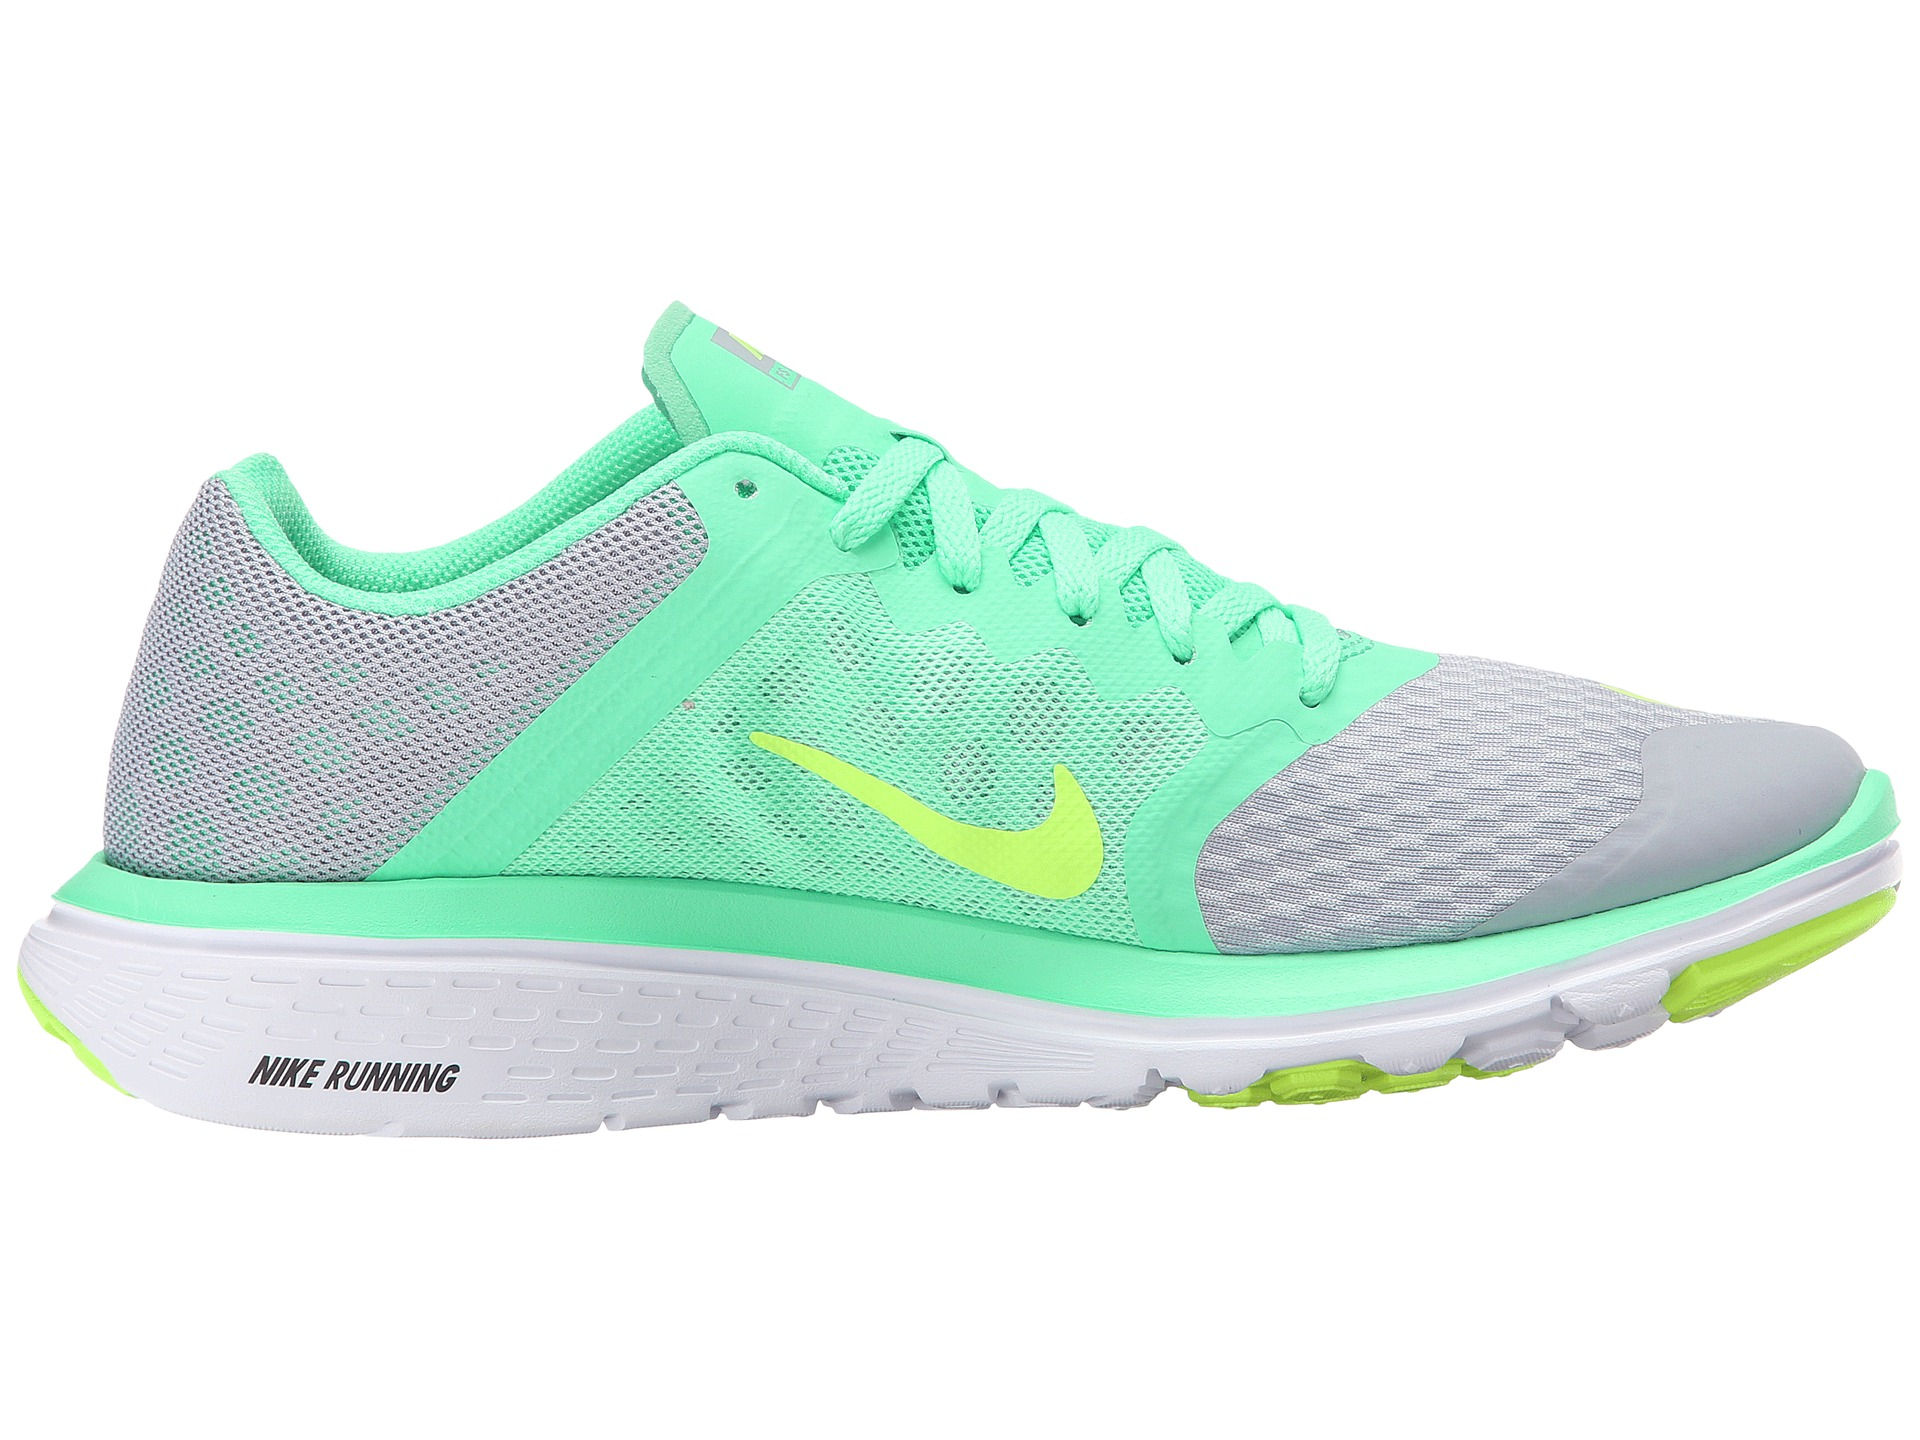 Cheap Nike Women's FS Lite Run Running Shoe